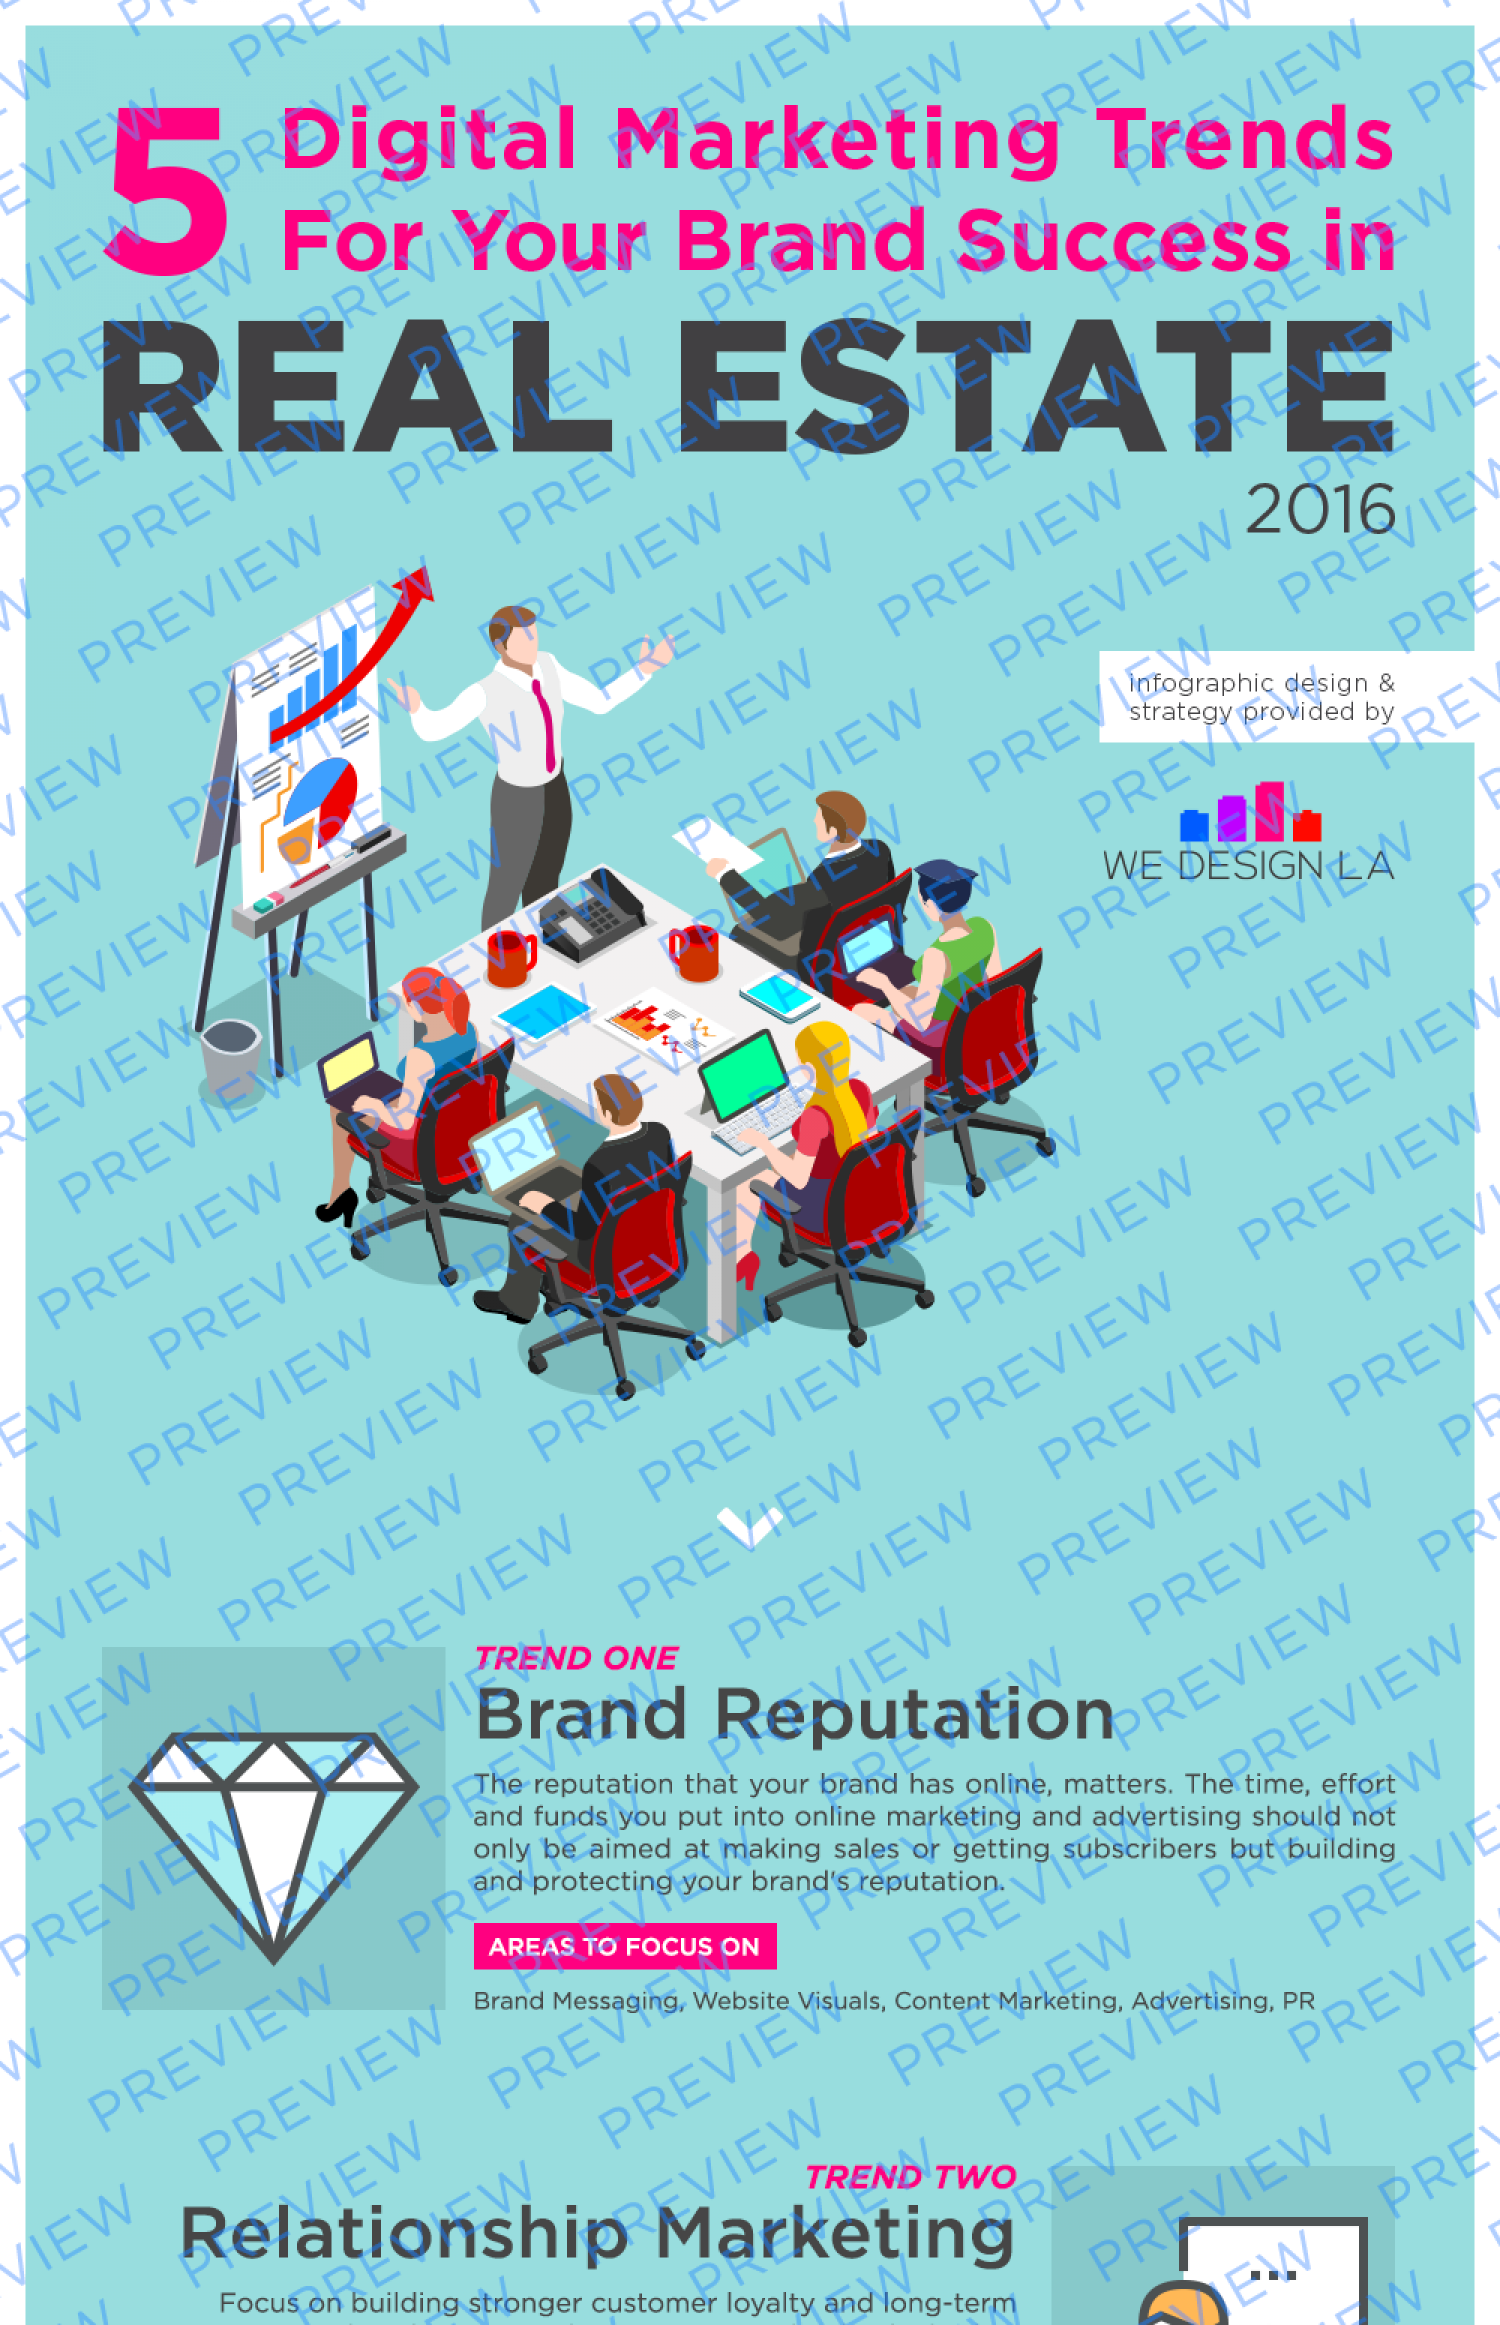 5 Digital Marketing Trends for Your Brand Success in Real Estate 2016 Infographic